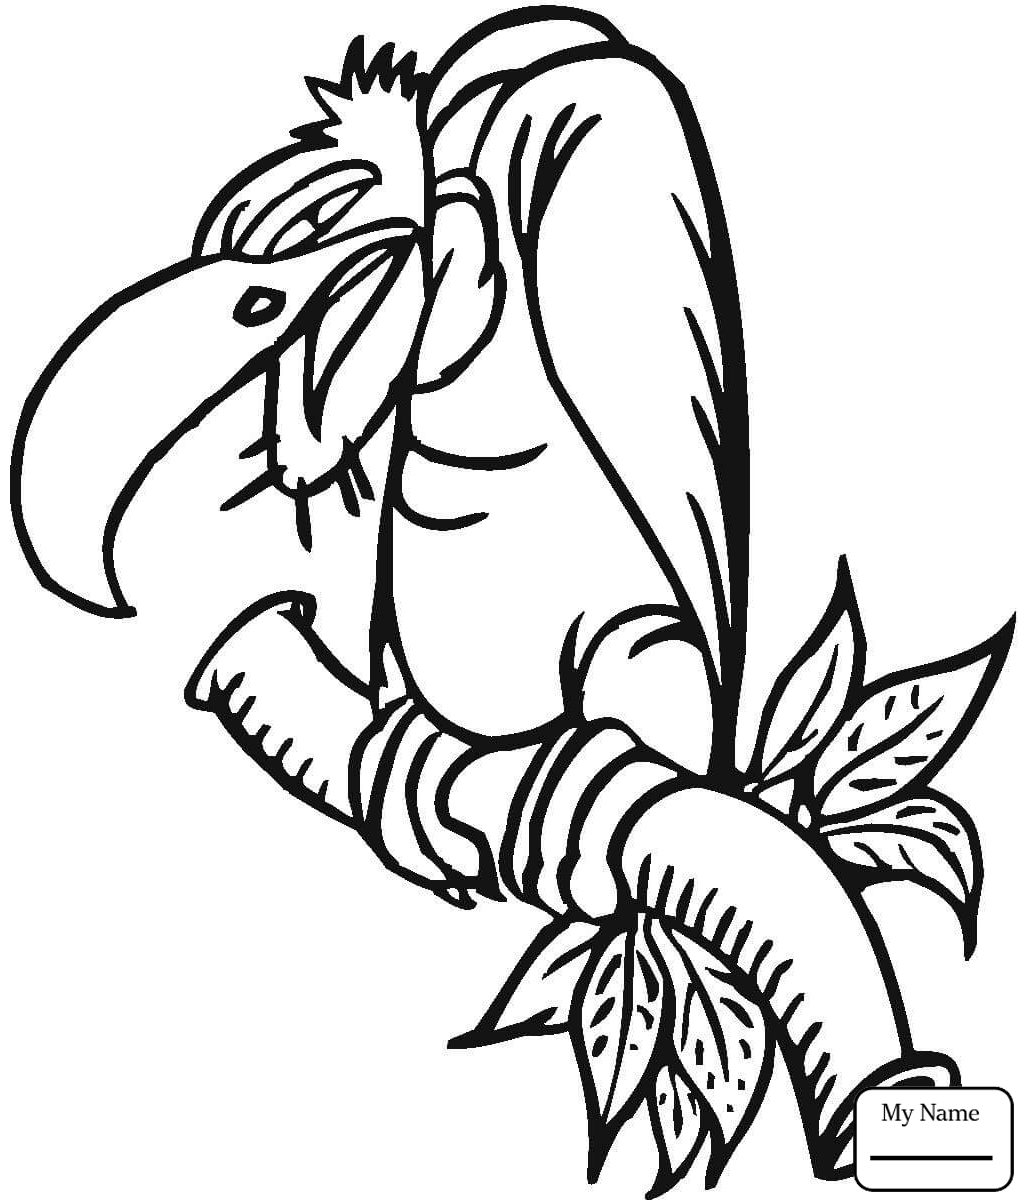 Turkey Vulture Coloring Page